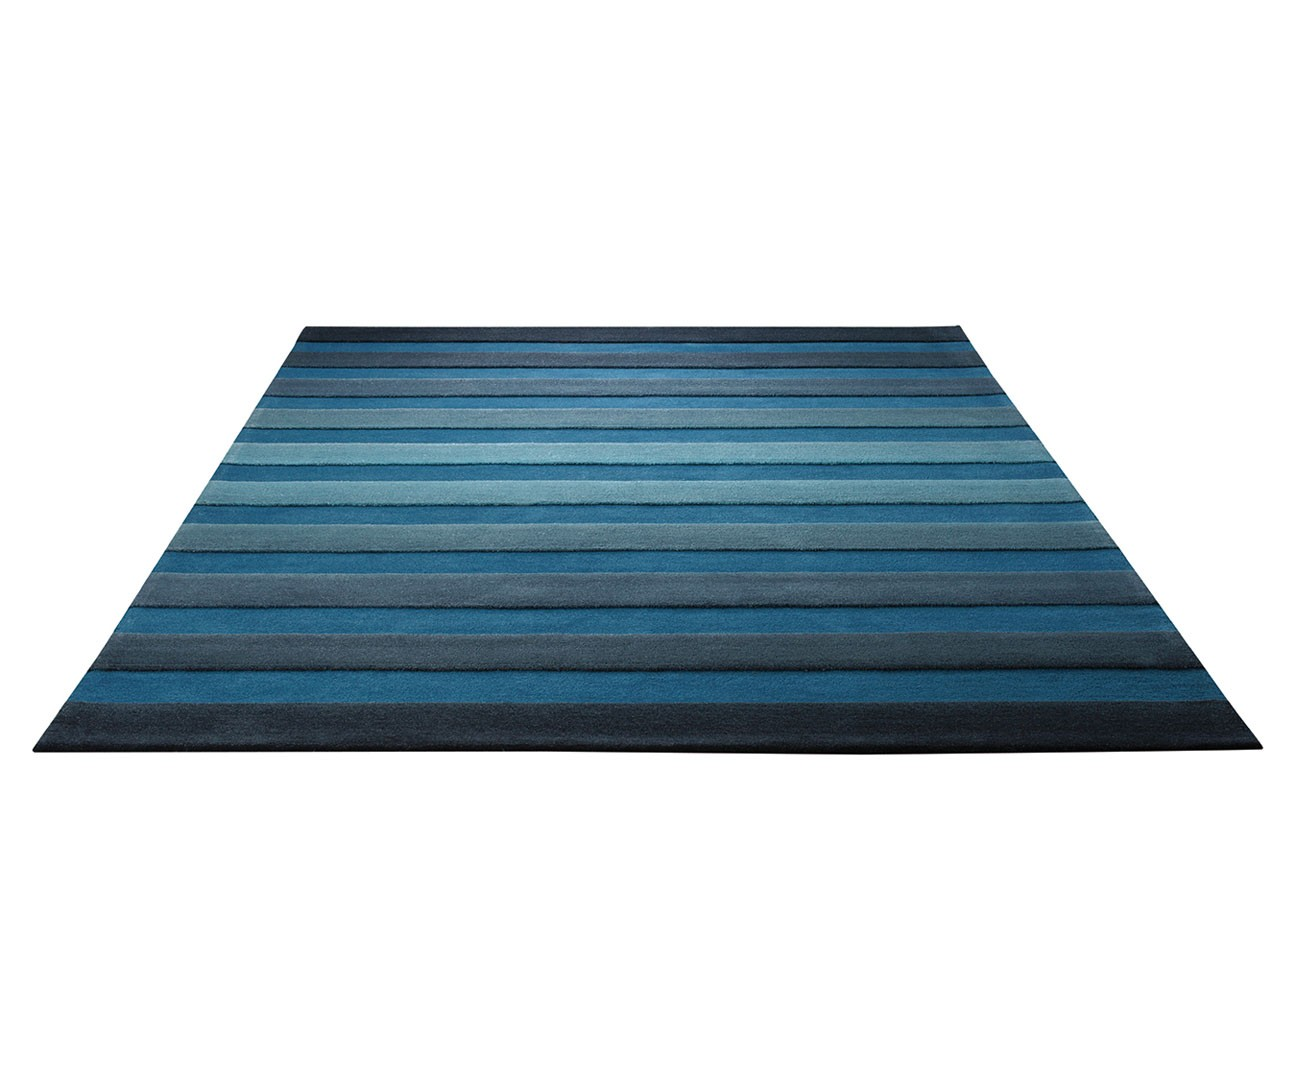 Tapis Salon Bleu Gris Tapis De Salon Bleu Cross Walk Par Esprit Home